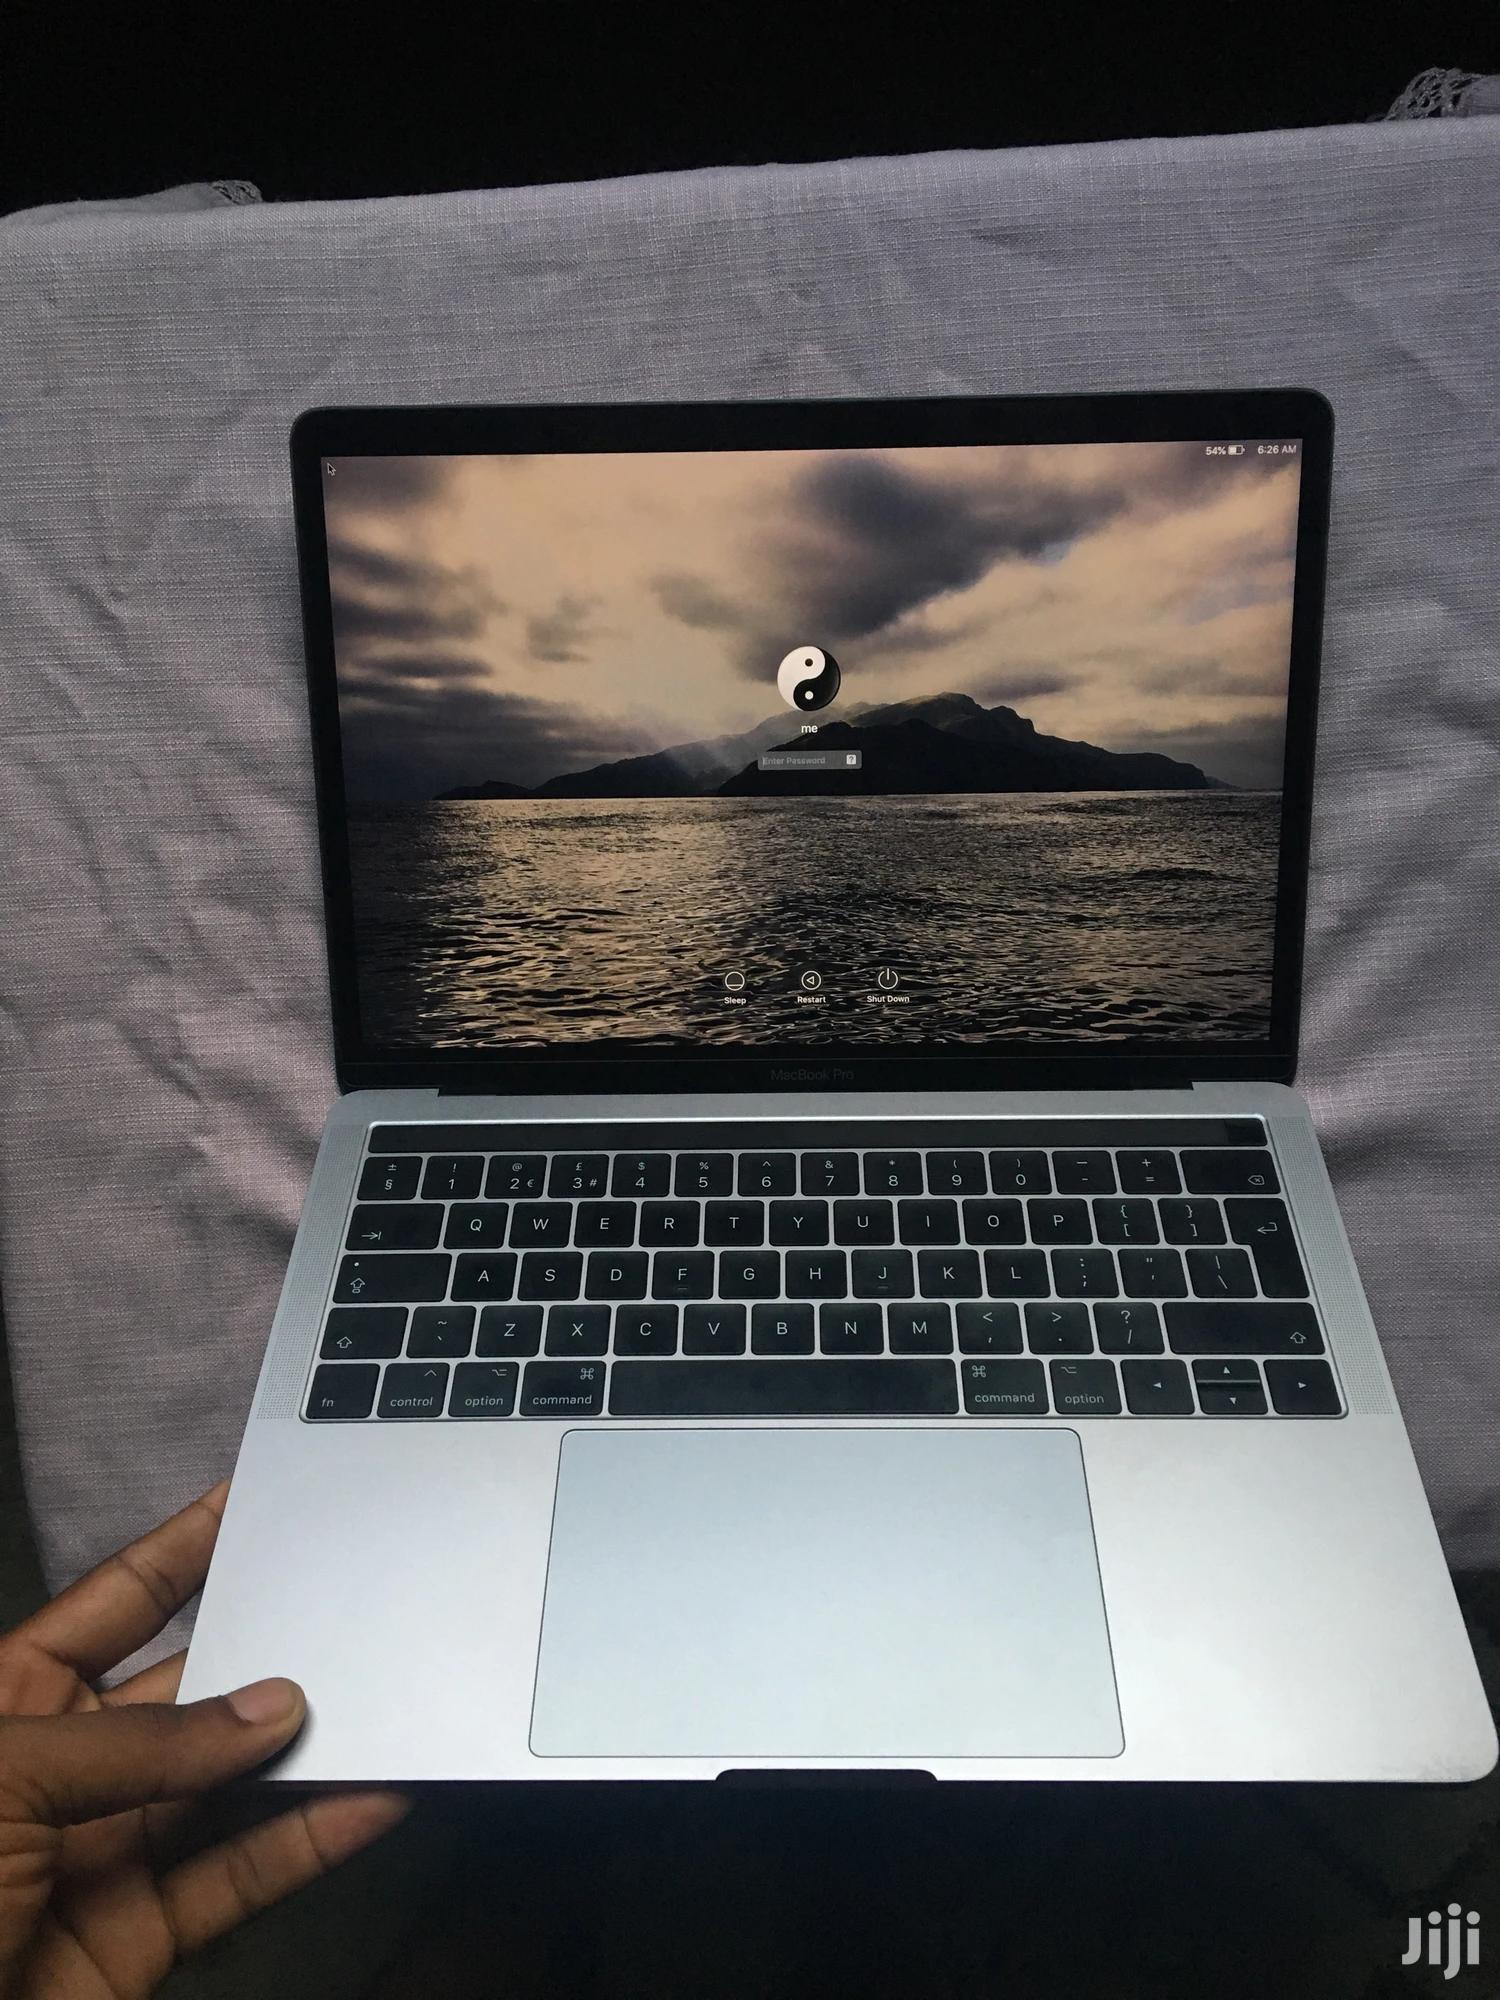 Laptop Apple MacBook Pro 8GB Intel Core i5 SSD 256GB | Laptops & Computers for sale in Teshie new Town, Greater Accra, Ghana